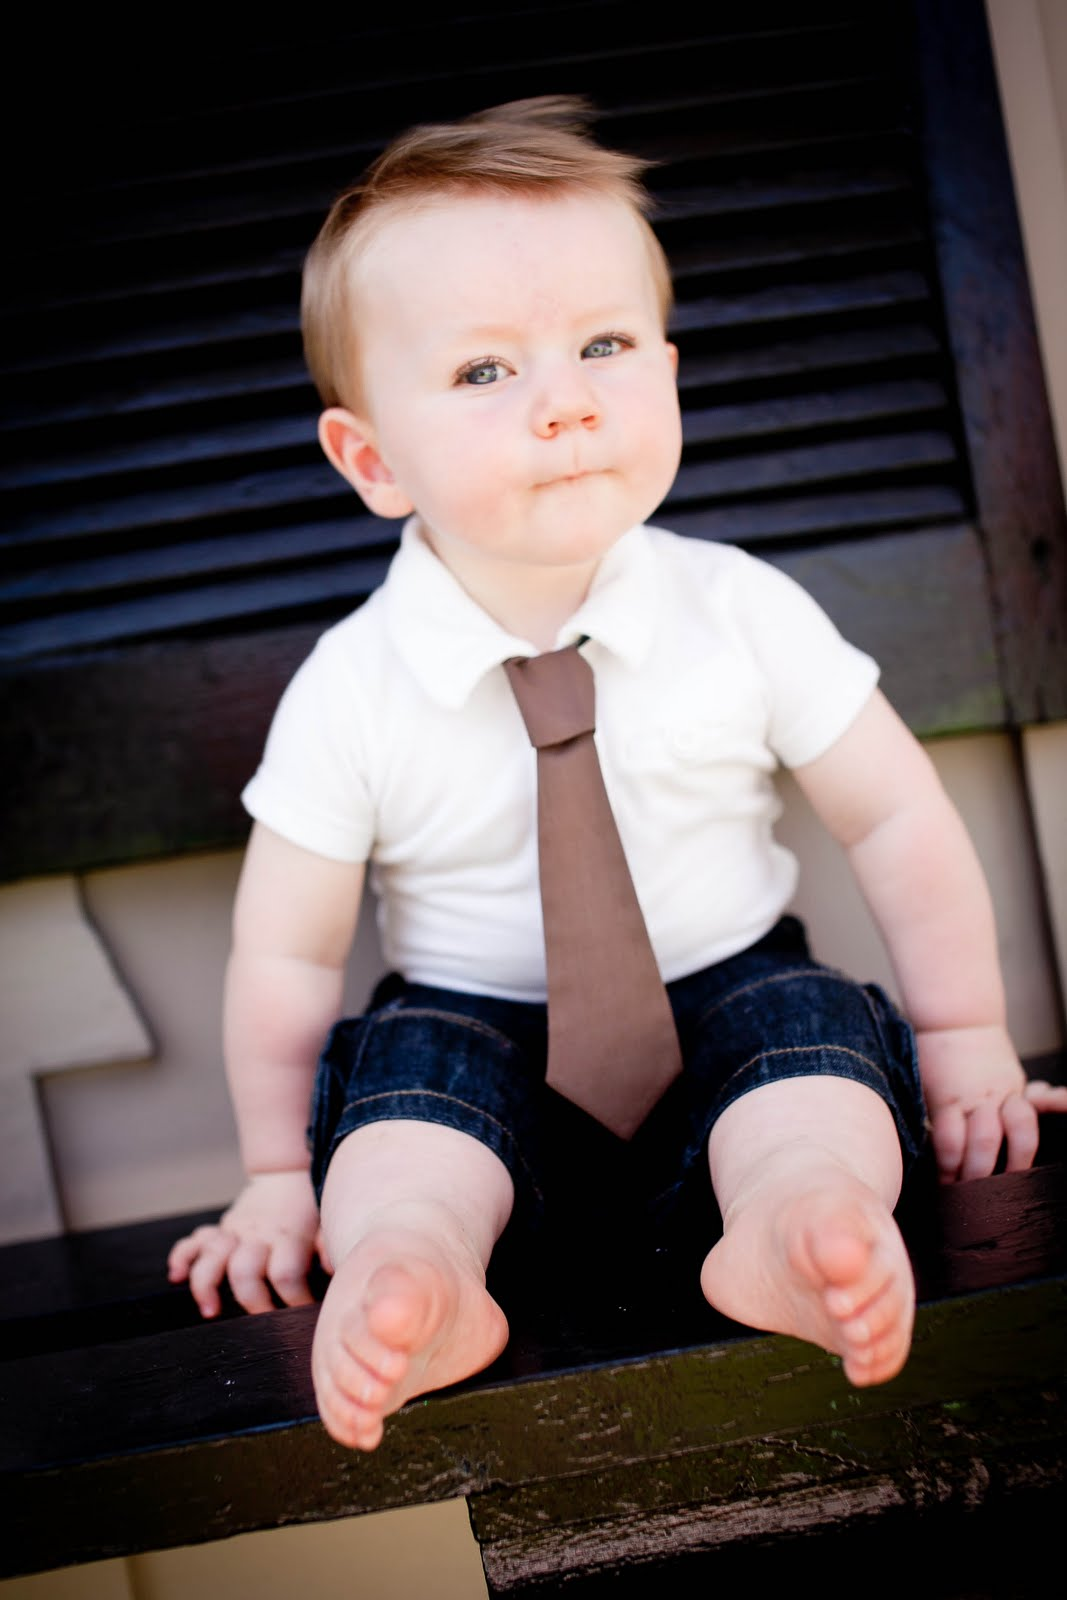 Chubby Baby Boutique Necktie S For Your Little Baby Boy